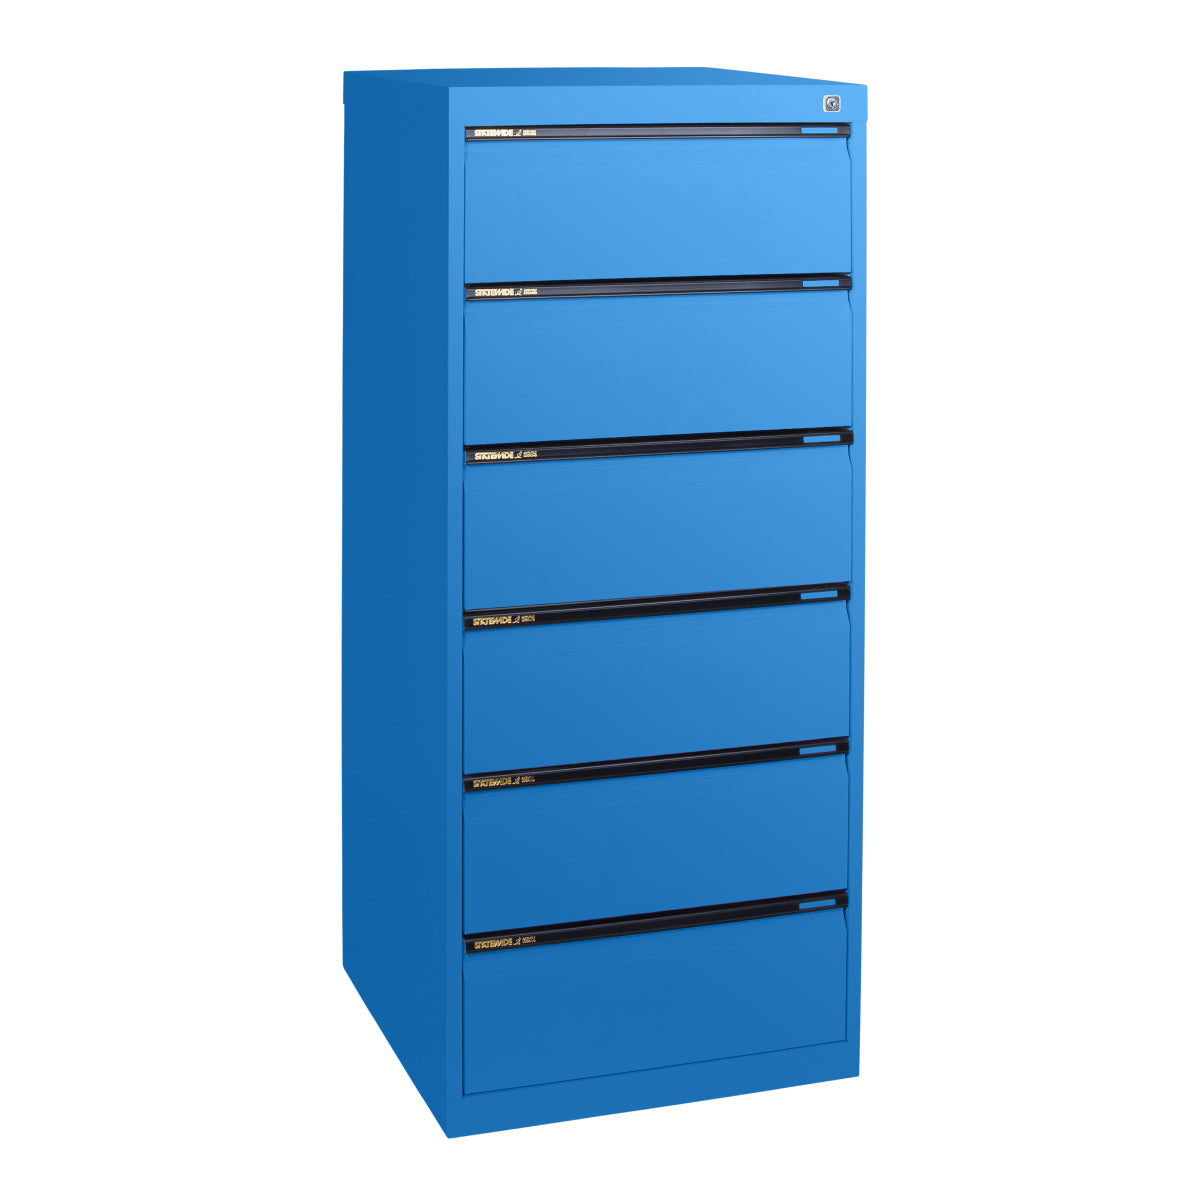 STATEWIDE CD AND DUPLEX CARD CABINETS 4, 6, 7 AND 8 DRAWERS